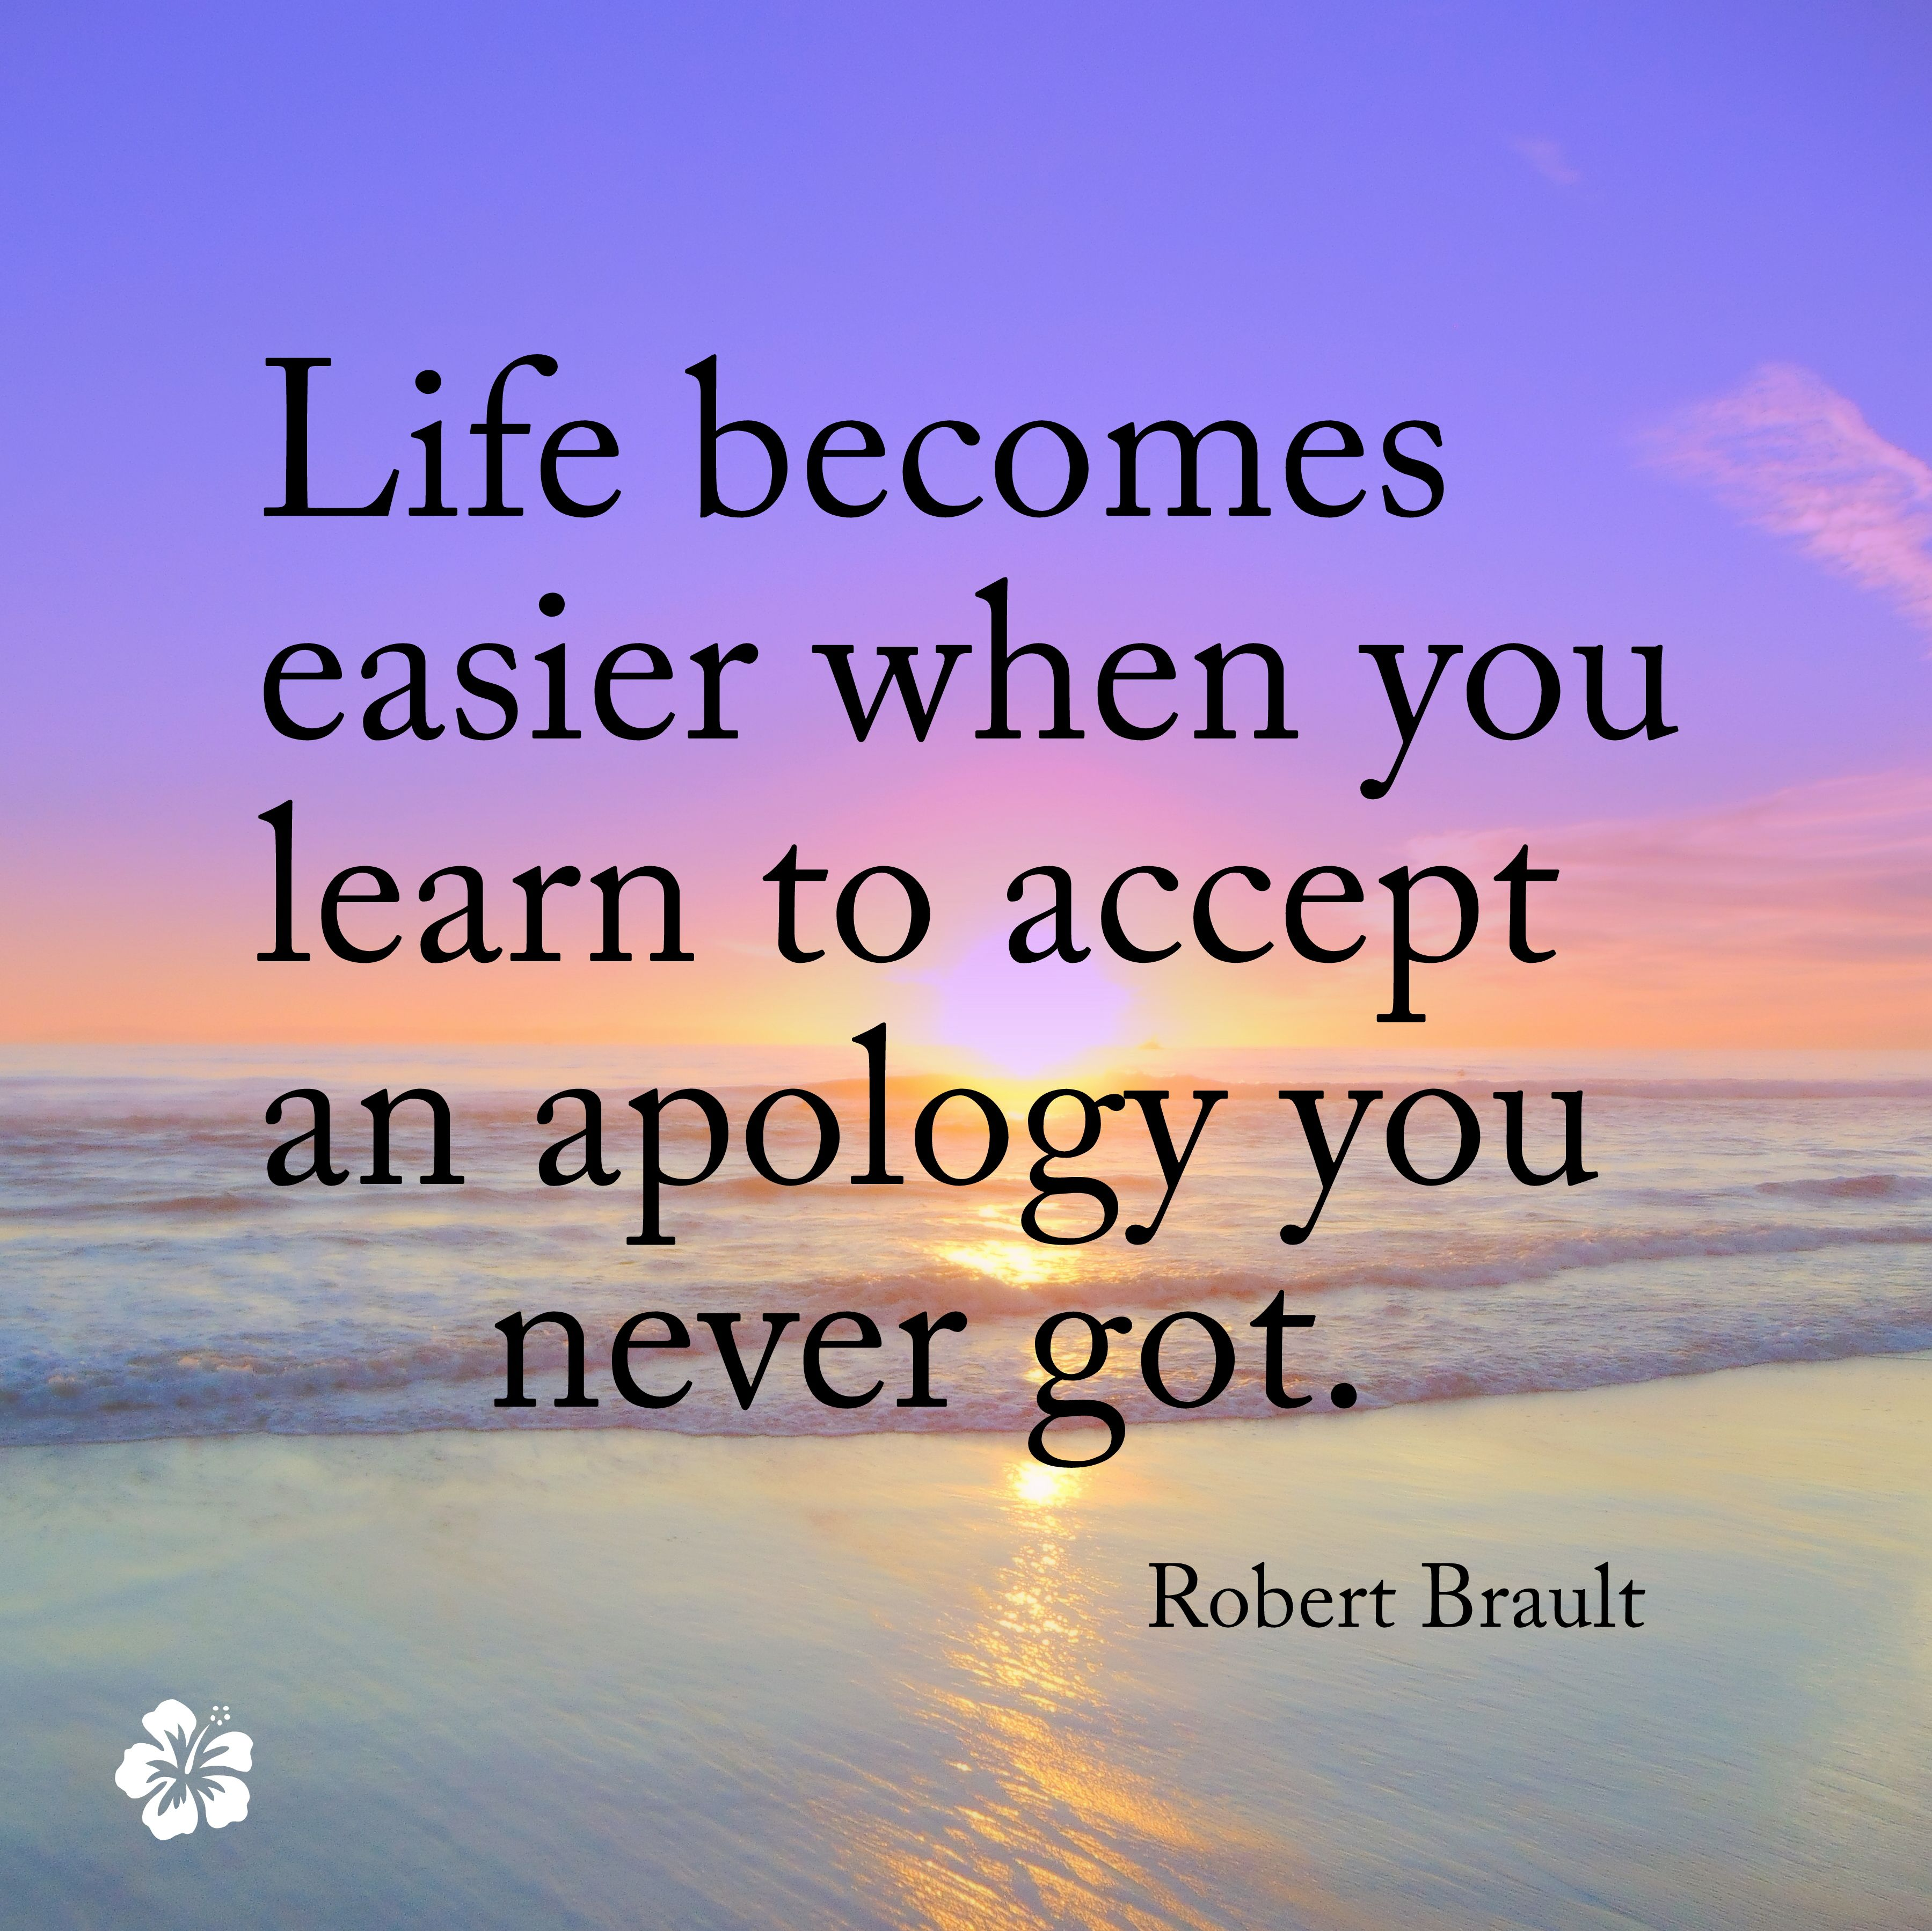 Life Becomes Easier When You Learn To Accept An Apology You Never Got Quote Www Lisashawaiiansand Positive Business Quotes Trouble Quotes Power Of Positivity